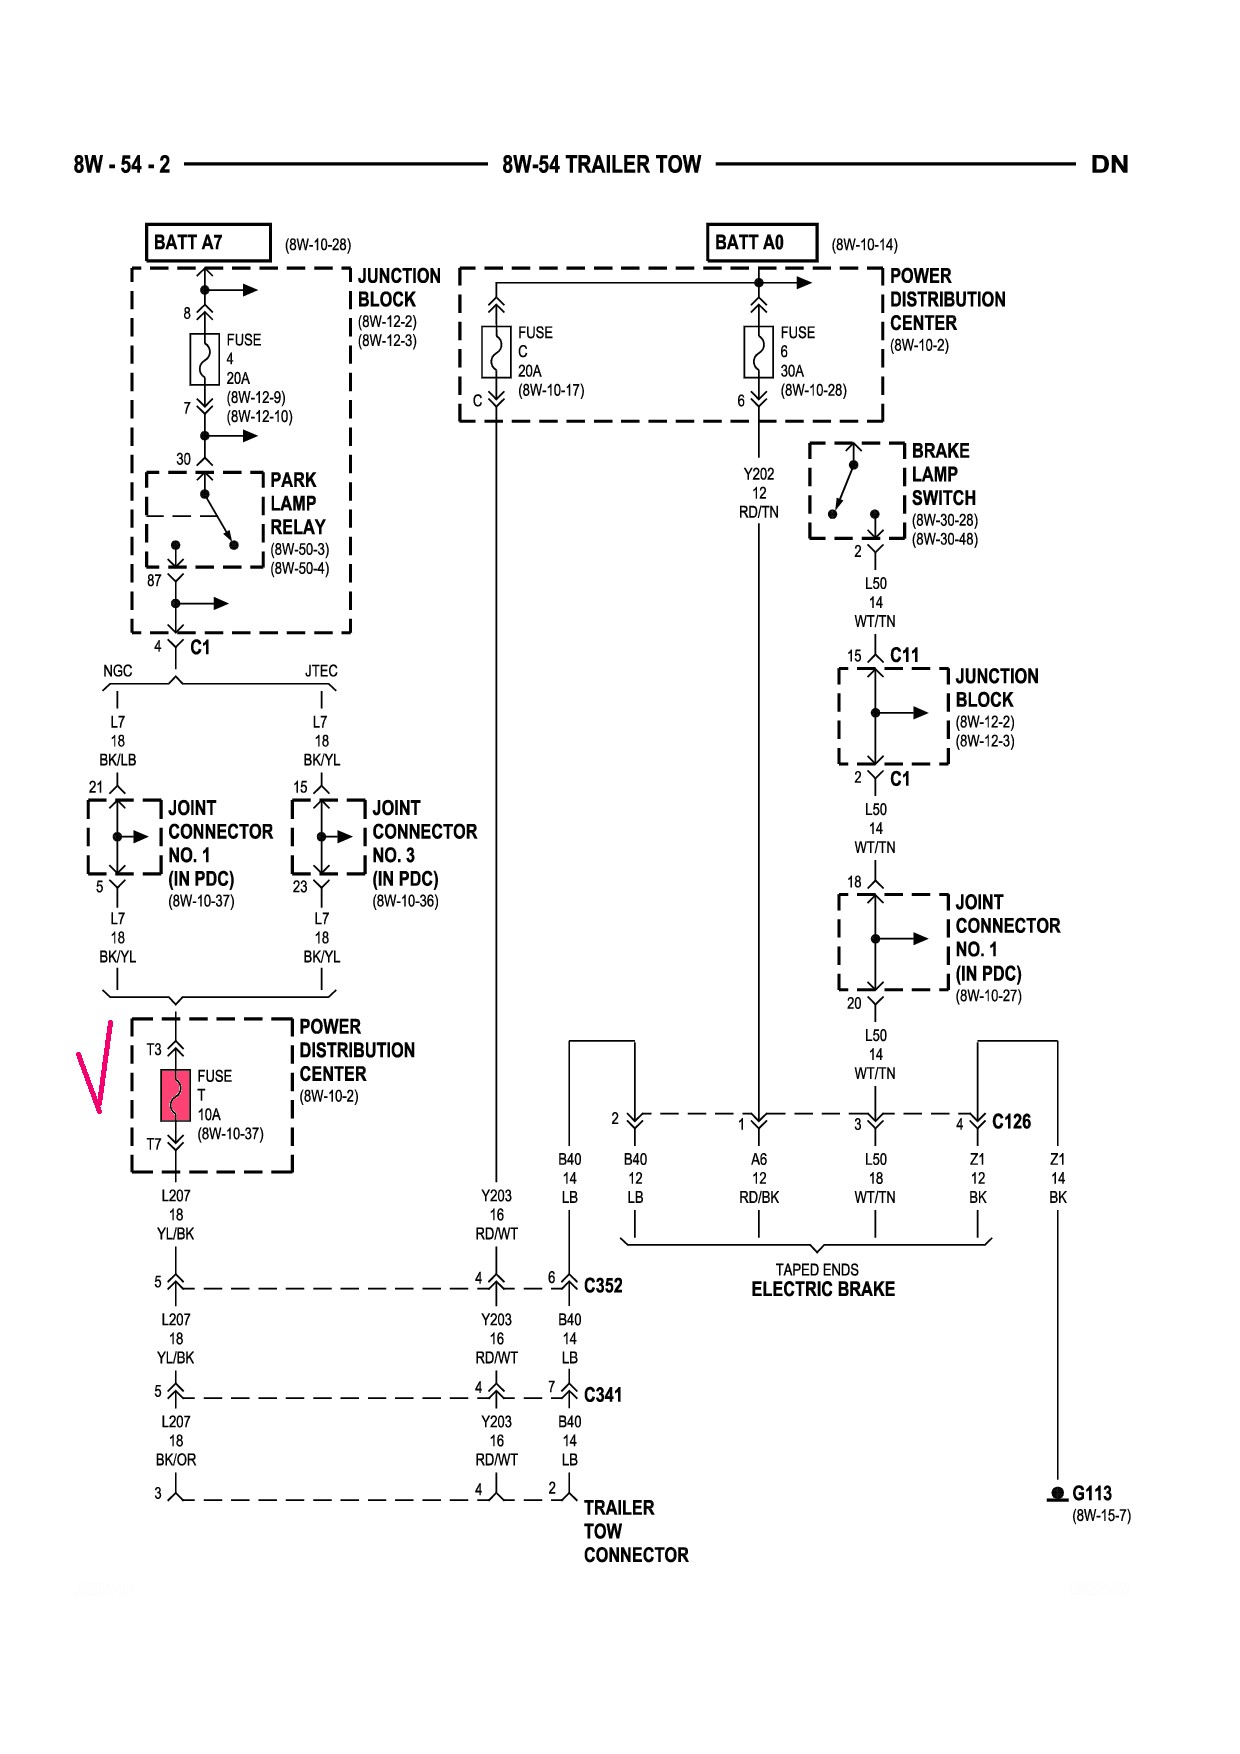 98 Dodge Durango Engine Diagram Wiring Diagram Approval A Approval A Zaafran It